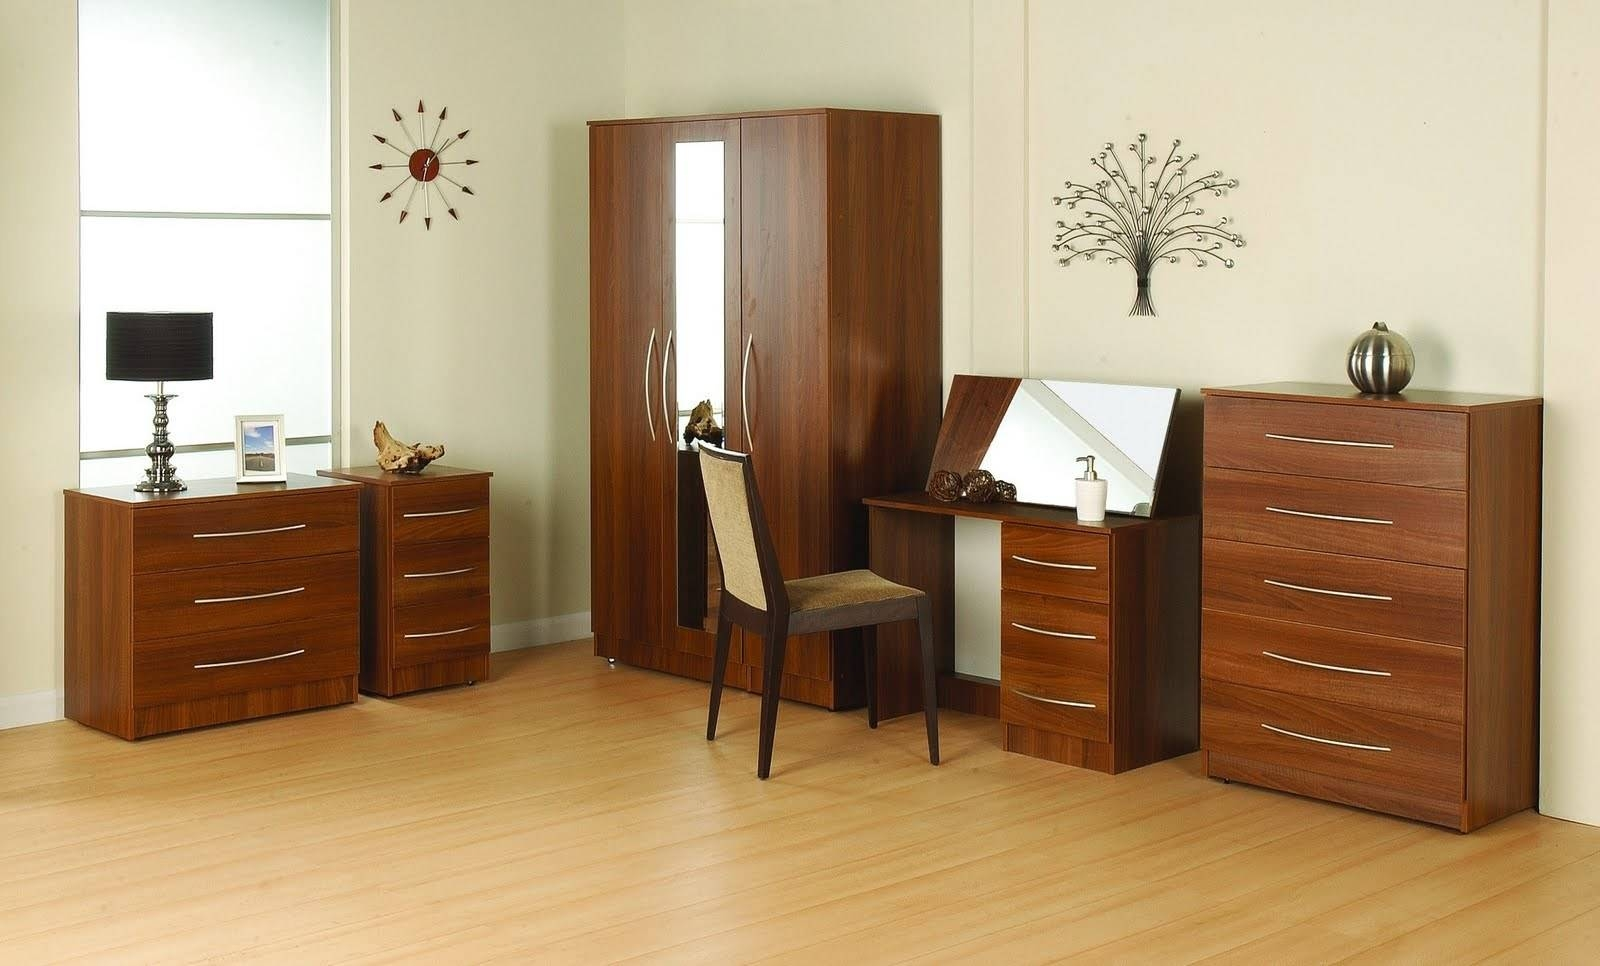 35+ Images Of Wardrobe Designs For Bedrooms With Dark Wood Wardrobes (Photo 28 of 30)